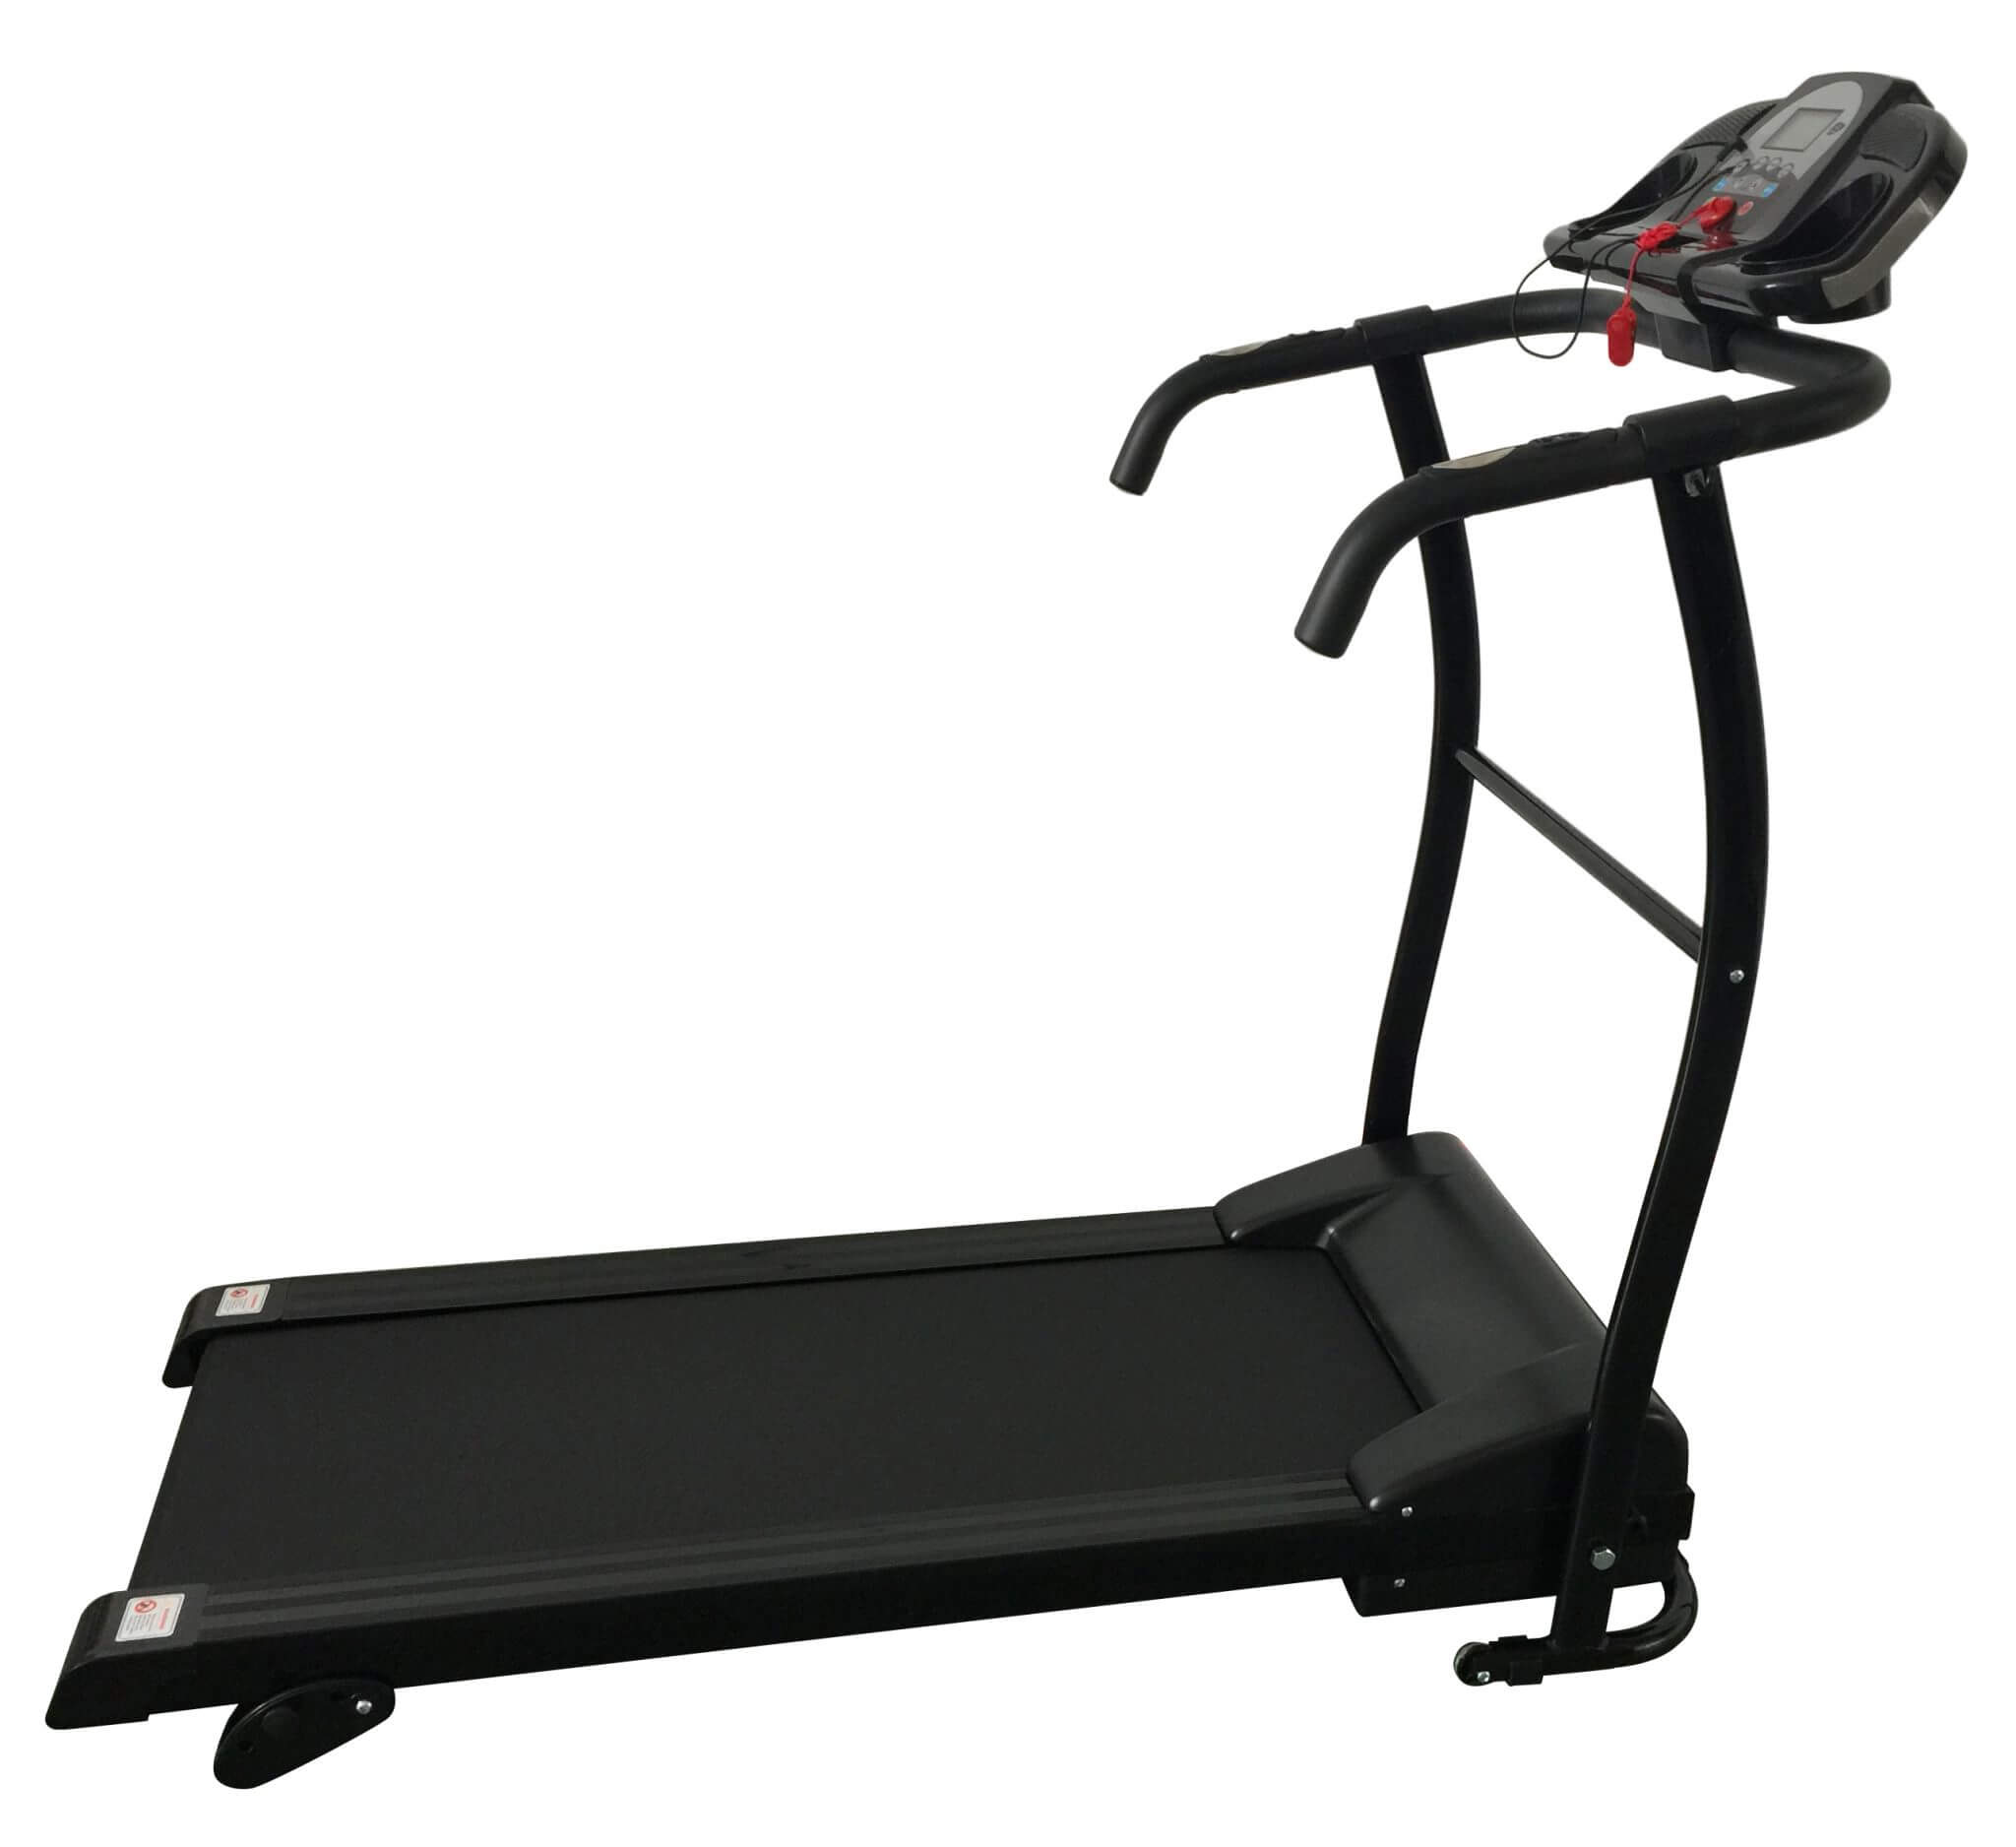 Fitness NRG-100 Power Pro Fitness Treadmill PRE-ORDER